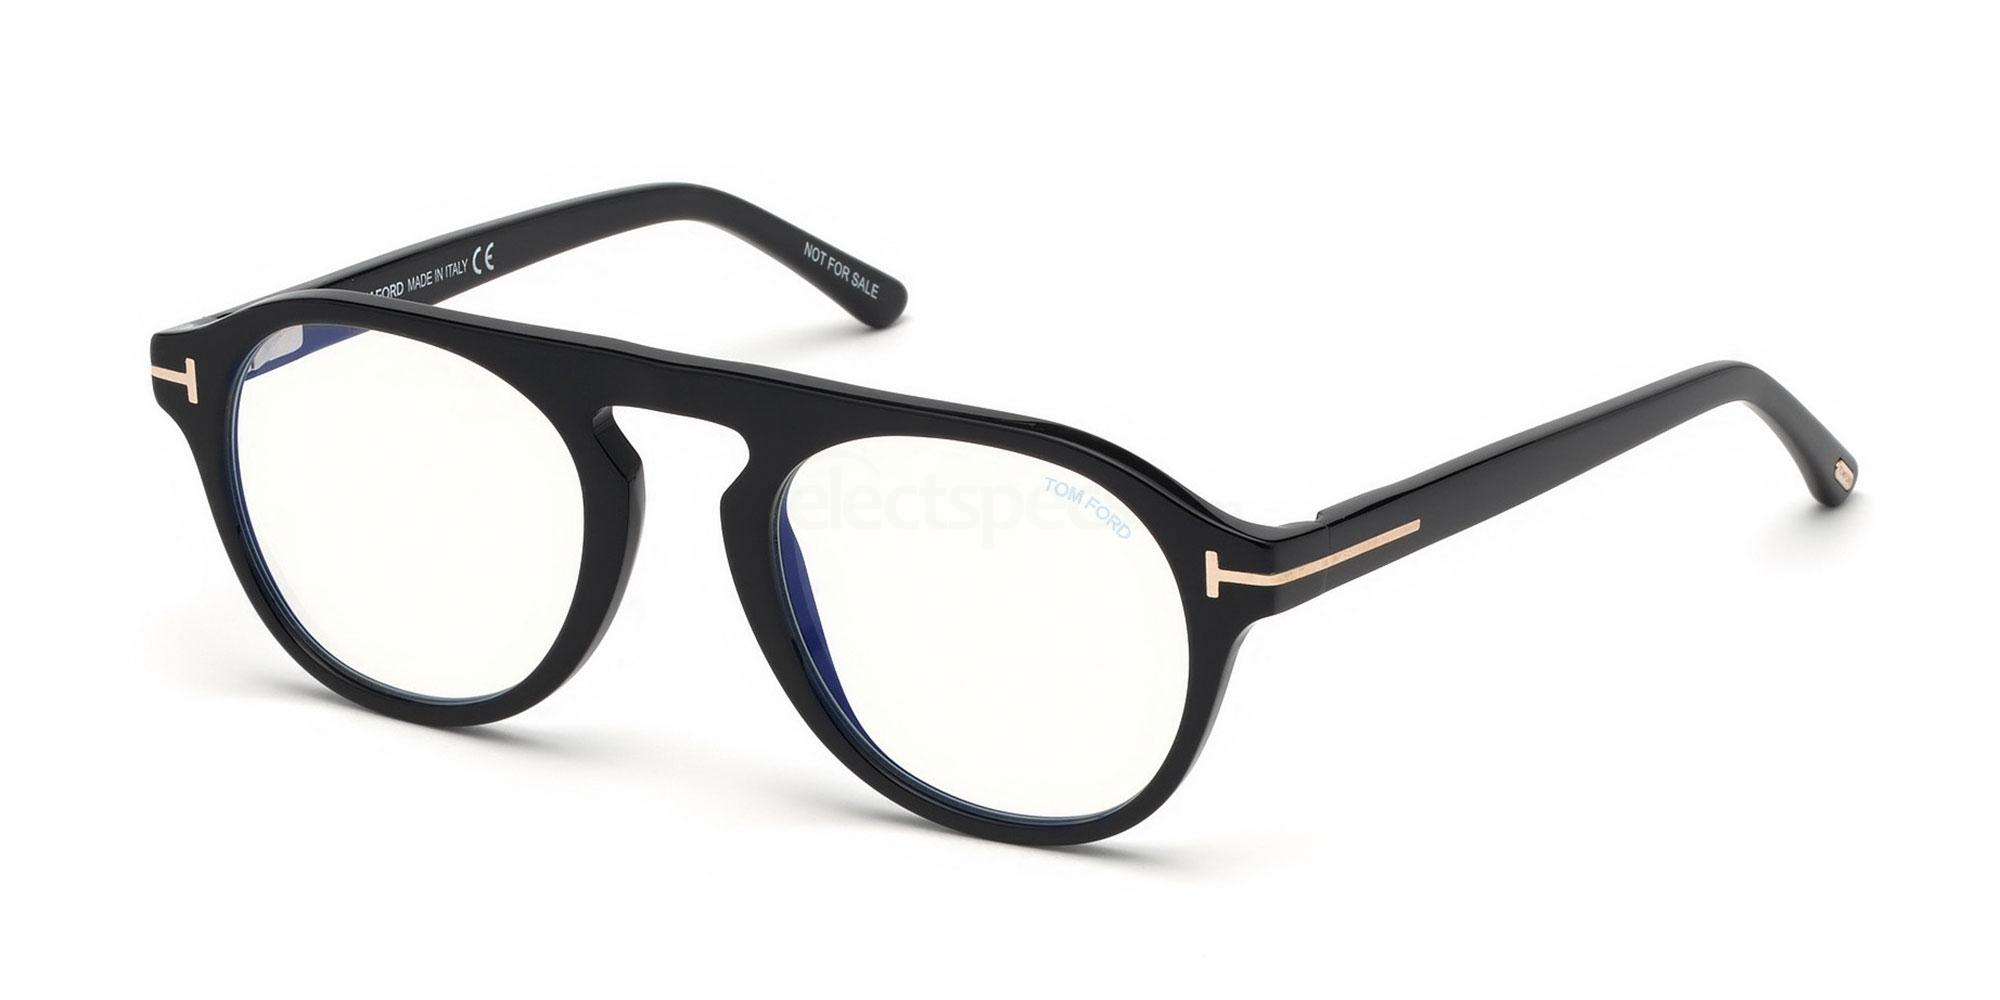 01V FT5533-B Glasses, Tom Ford